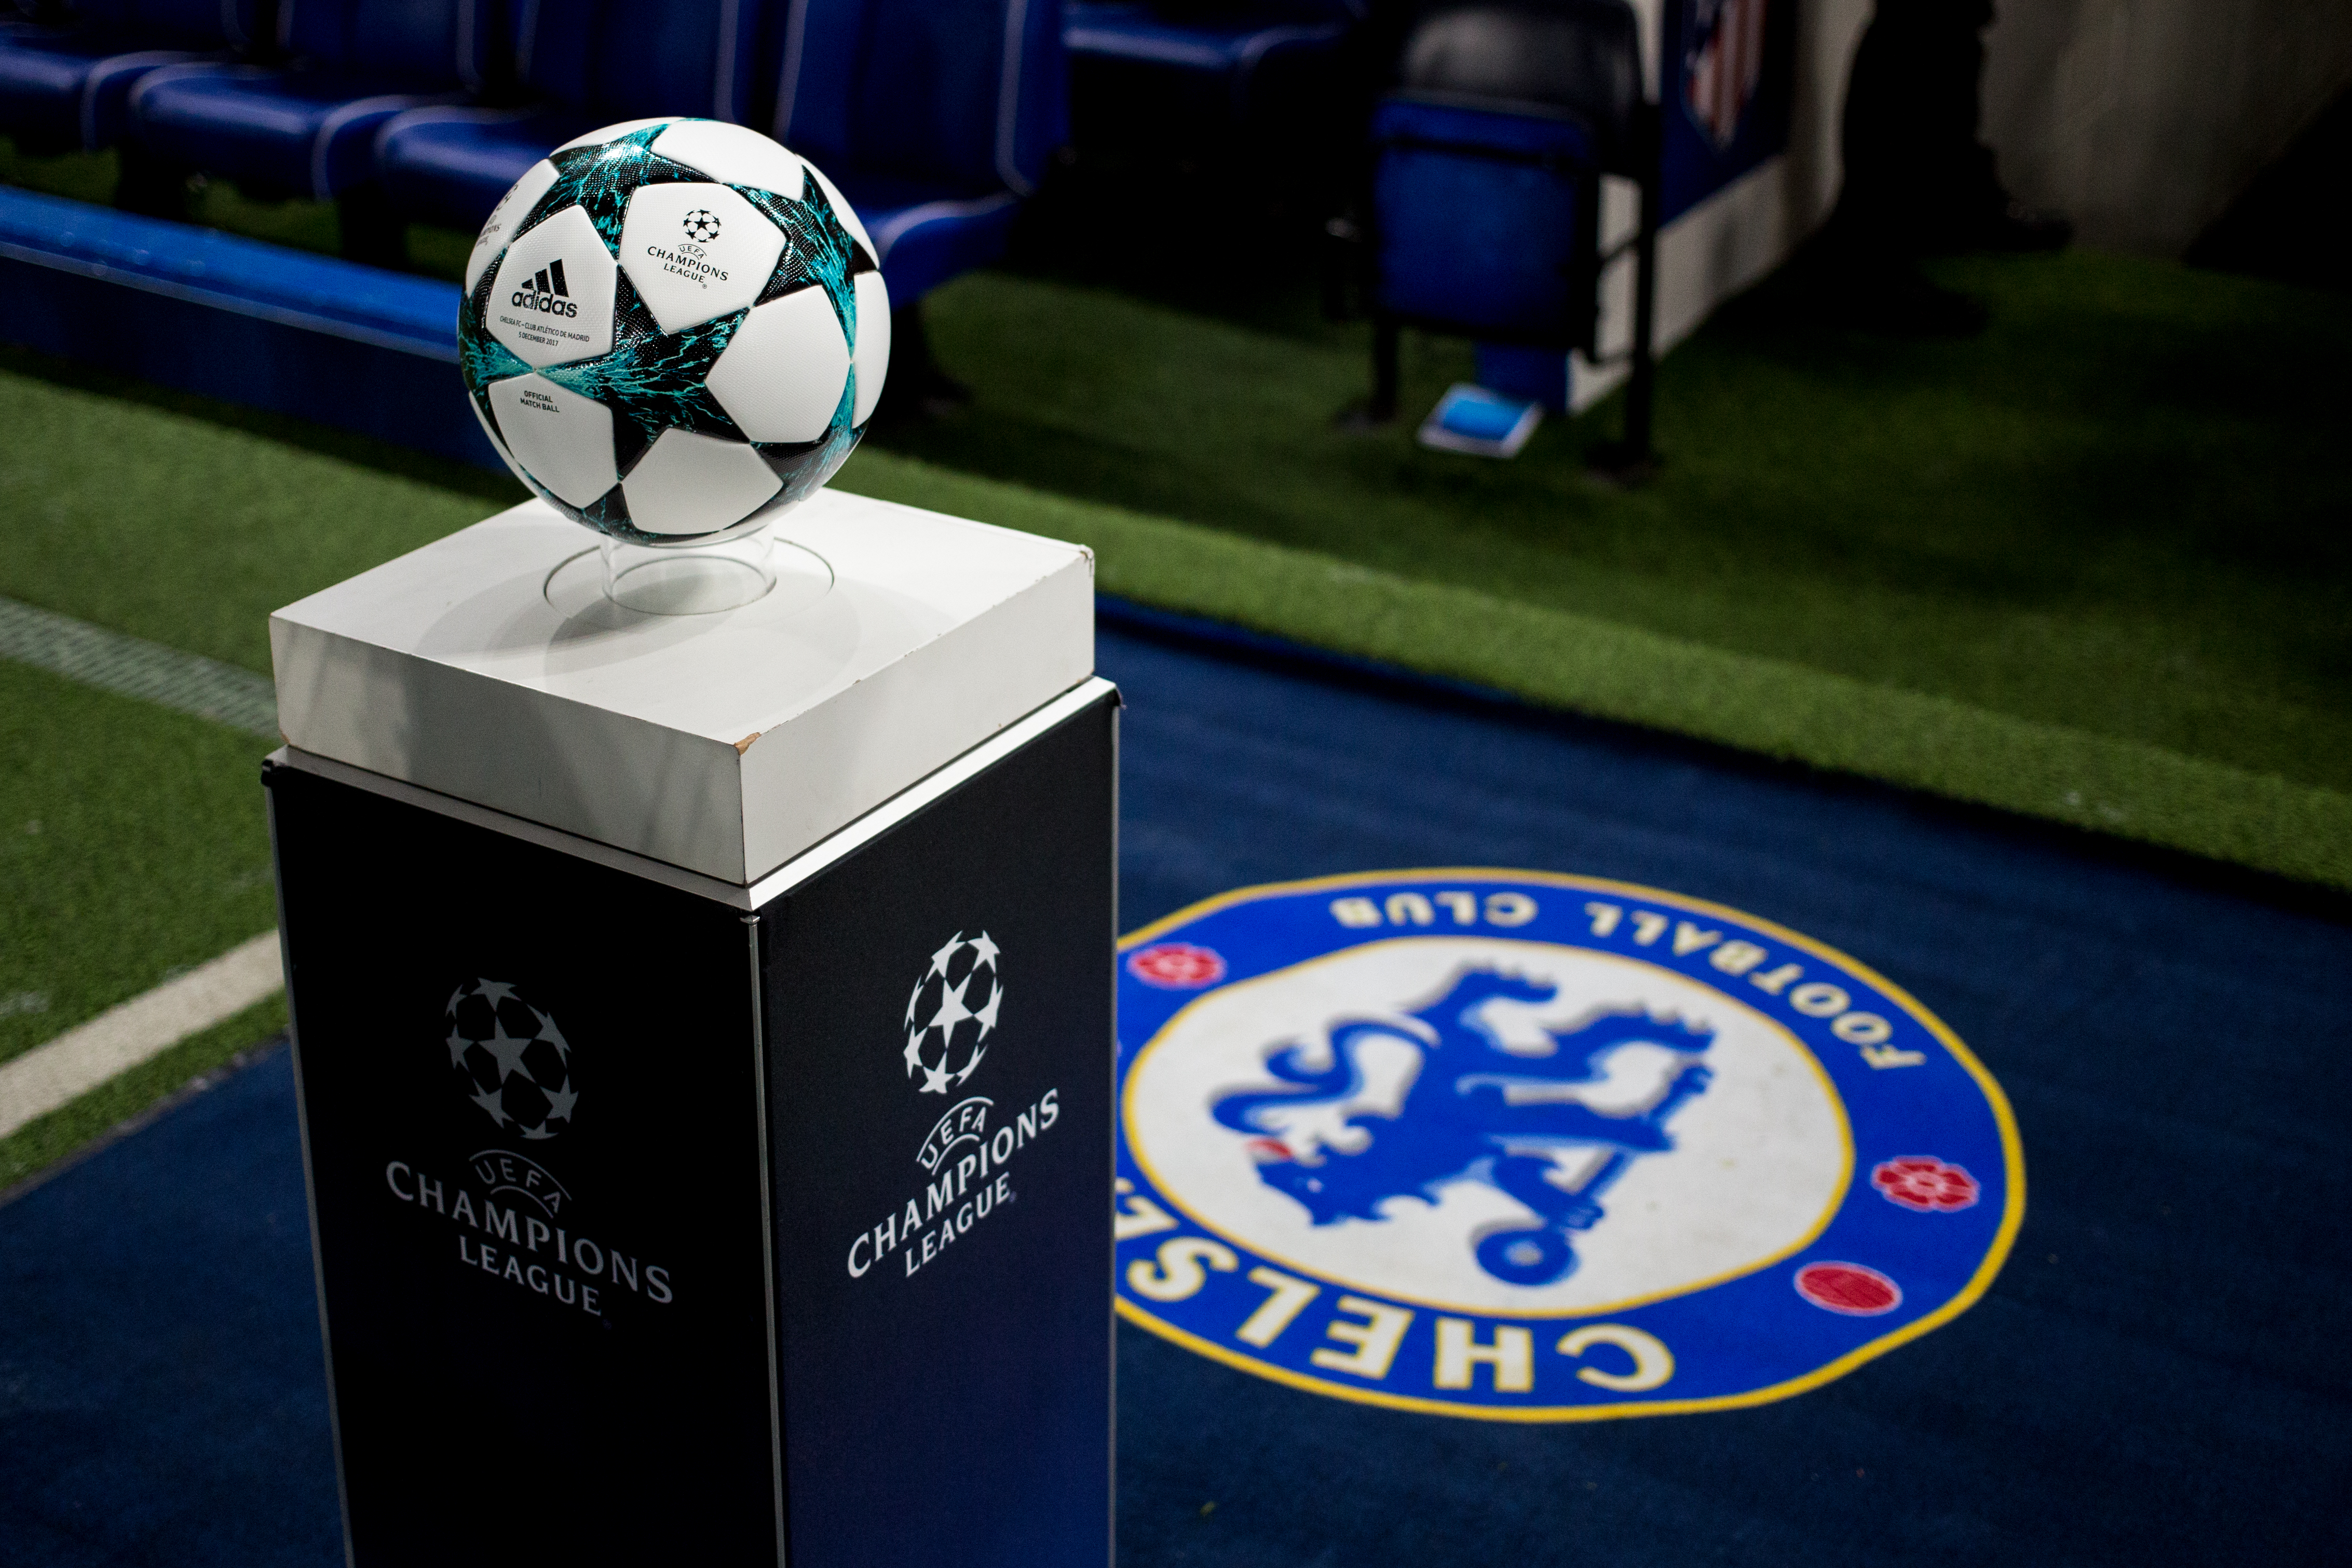 Chelsea vs. Valencia, Champions League: Preview, team news, how to watch